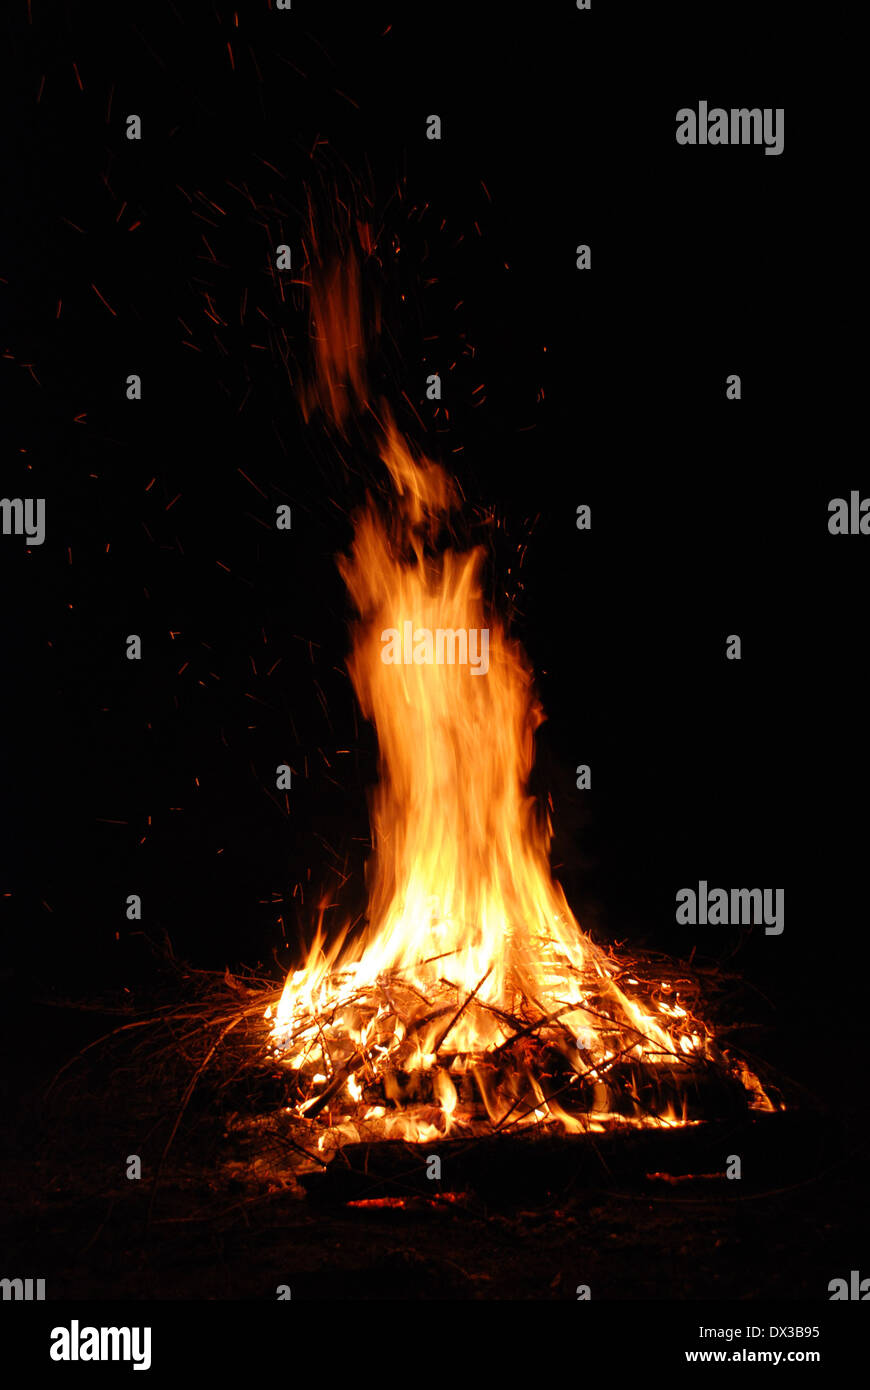 Red fire on black background - Stock Image